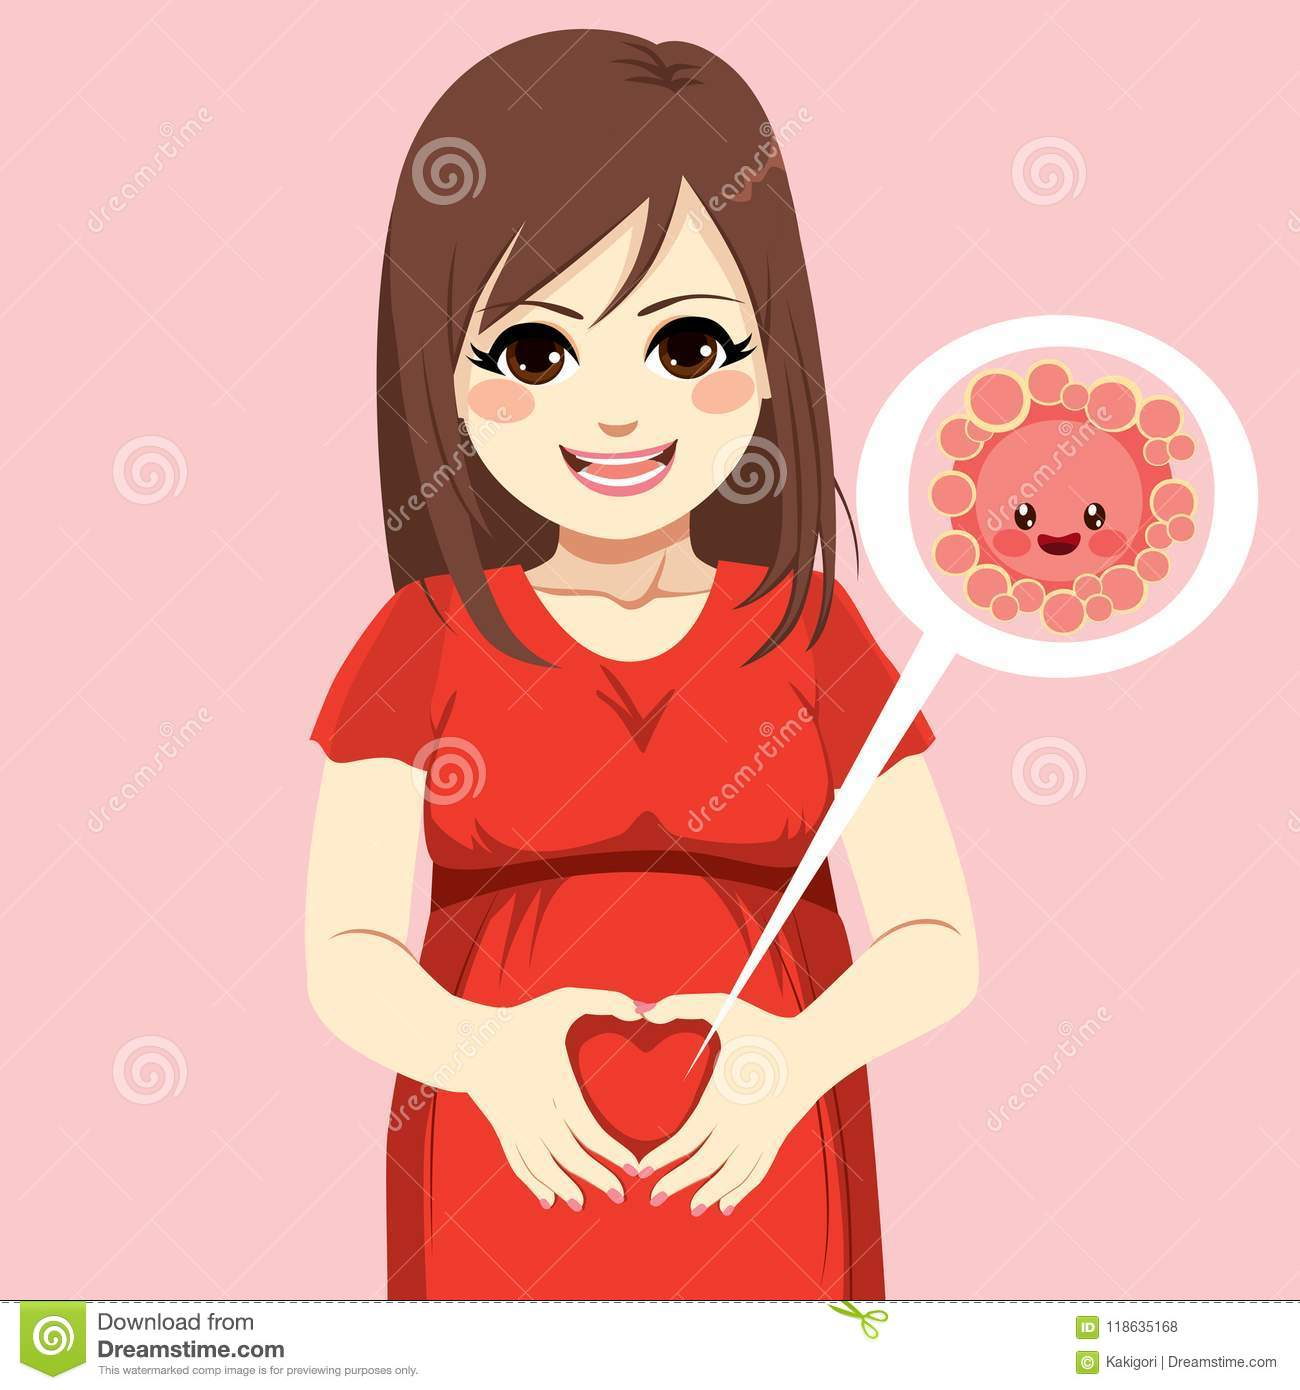 Pregnant Egg Cell Love Hands Stock Vector Illustration Of Care